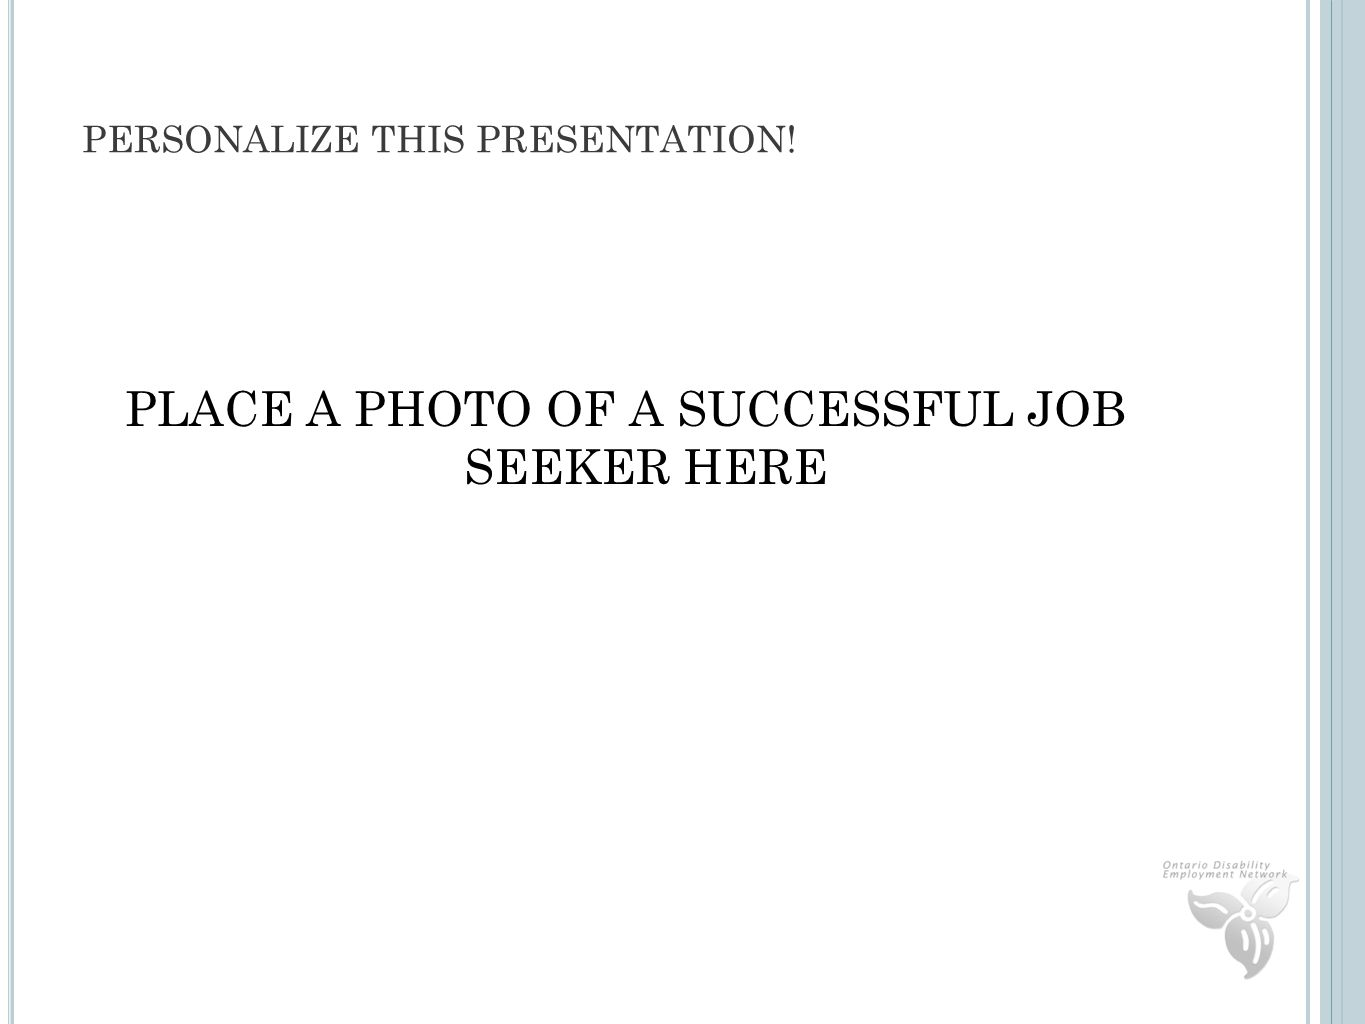 PERSONALIZE THIS PRESENTATION! PLACE A PHOTO OF A SUCCESSFUL JOB SEEKER HERE